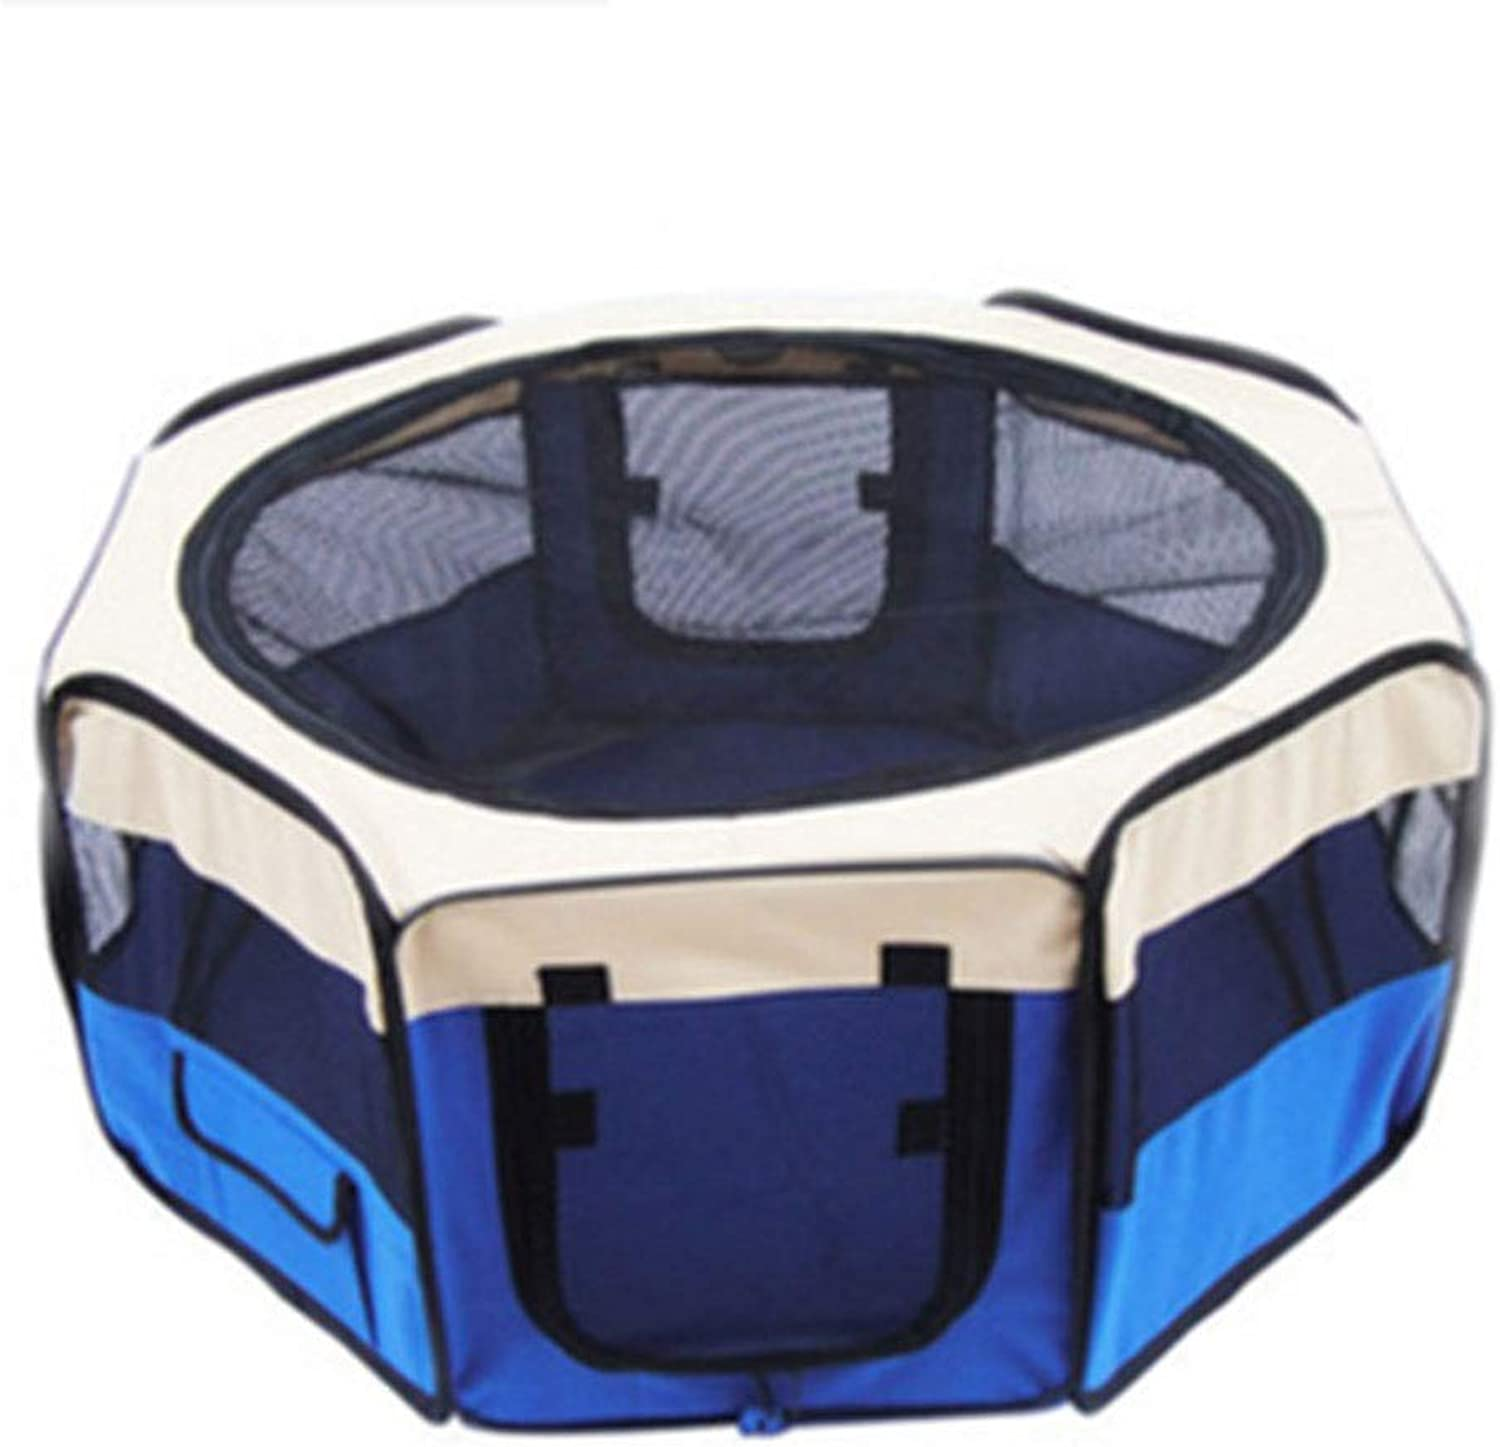 Dog Playpens Pet Production House Indoor Cat Room Outdoor Collapsible Tent Closed Ventilation Fence EightSided Grid Pet Play Fence Outdoor Pet Production Box (color   blueee, Size   155  155  61cm)